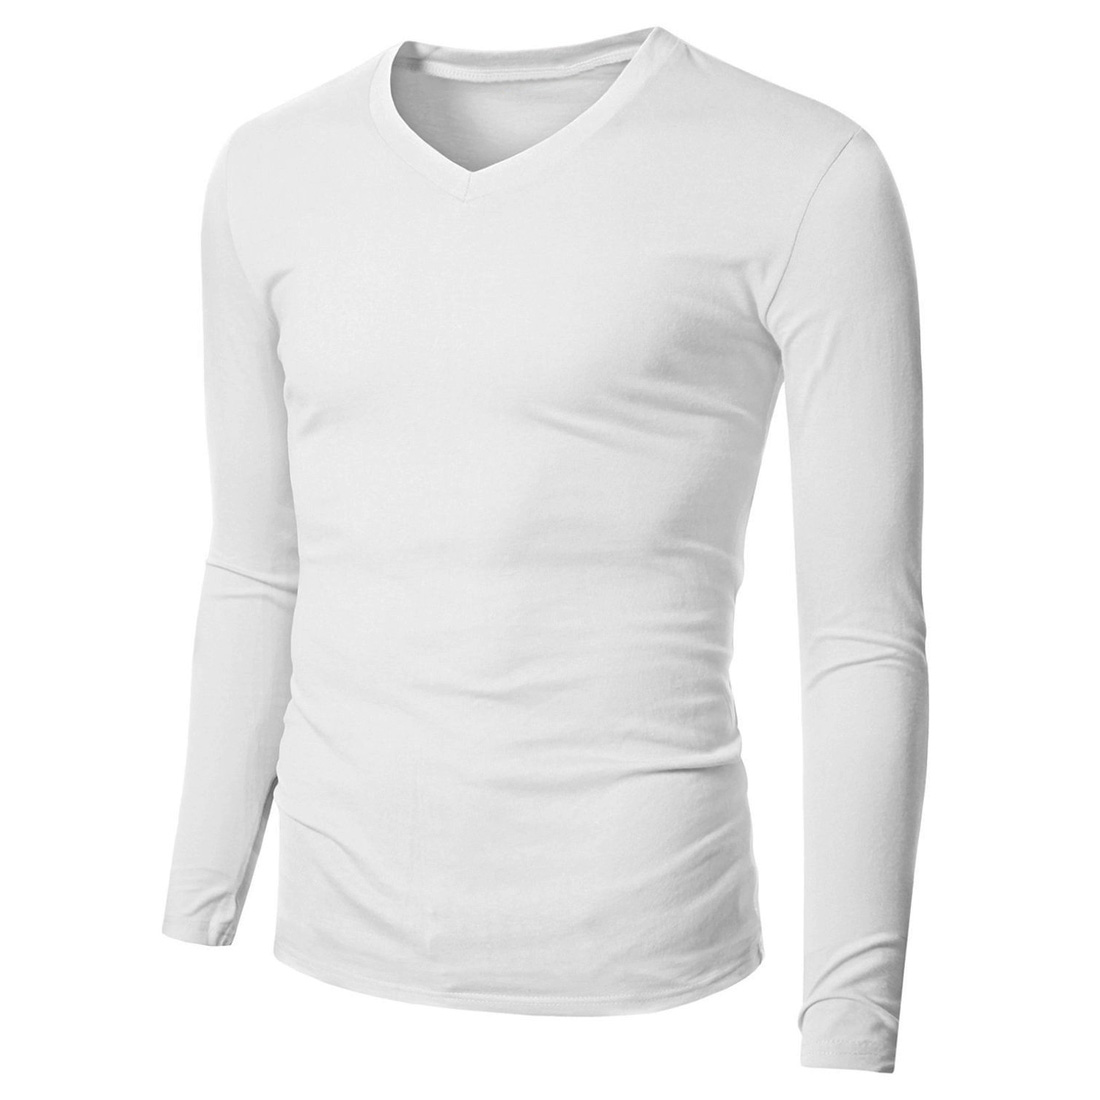 100 cotton mens slim basic tee t shirt long sleeve v neck for Mens 100 cotton t shirts